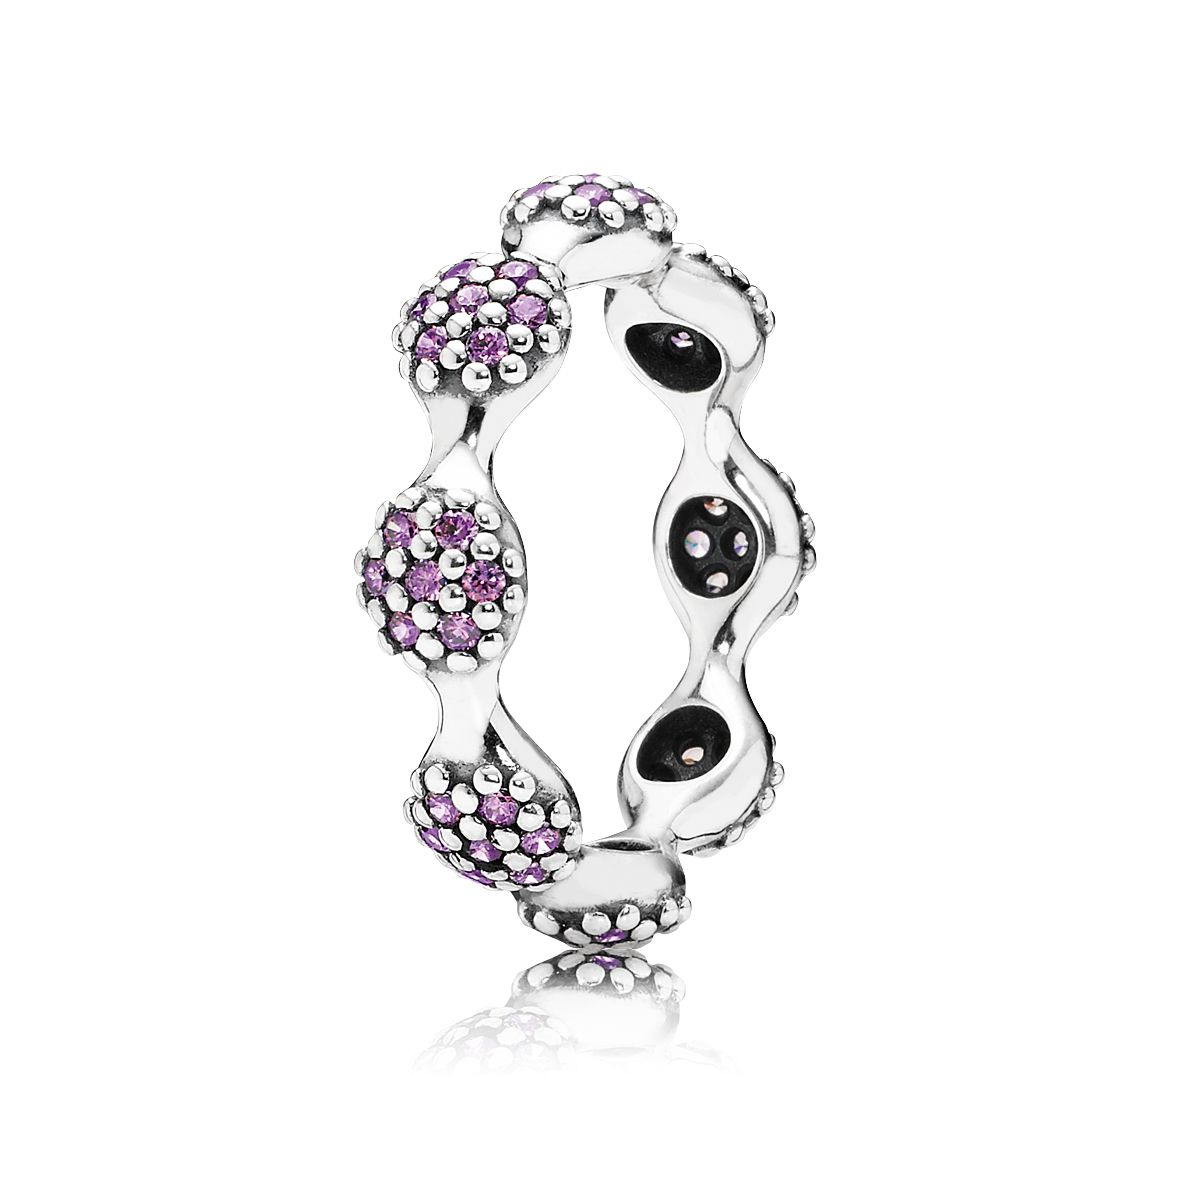 Pave silver ring with fancy purple cubic zirconia